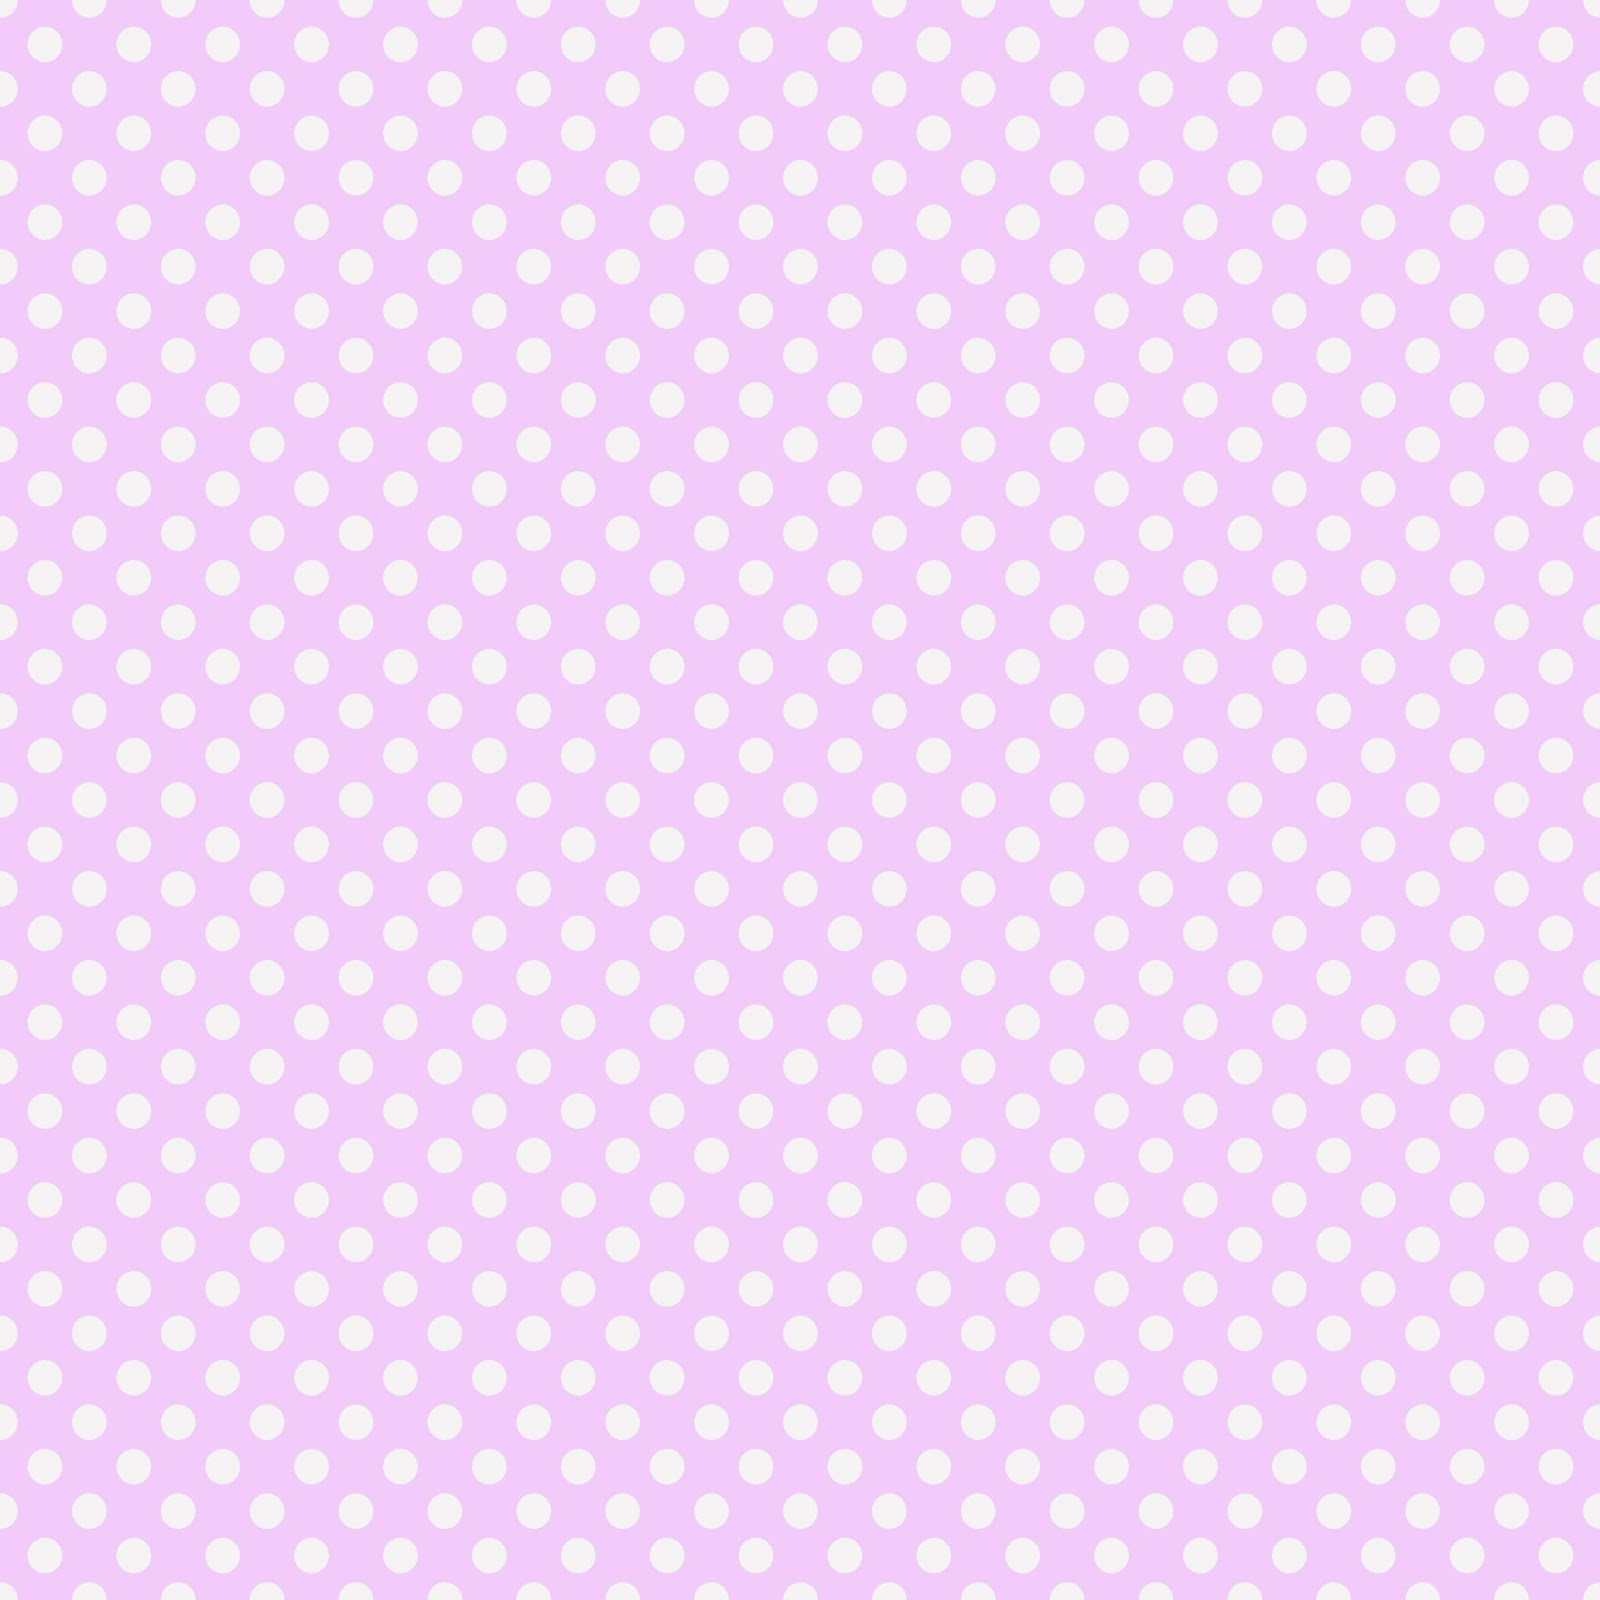 http://4.bp.blogspot.com/-yQ93xn_l_3k/UzuGDzfEJ7I/AAAAAAAANxQ/T6tPPd3oJKc/s1600/1+free+digital+scrapbook+paper_lilac+polka+dot+background.jpg